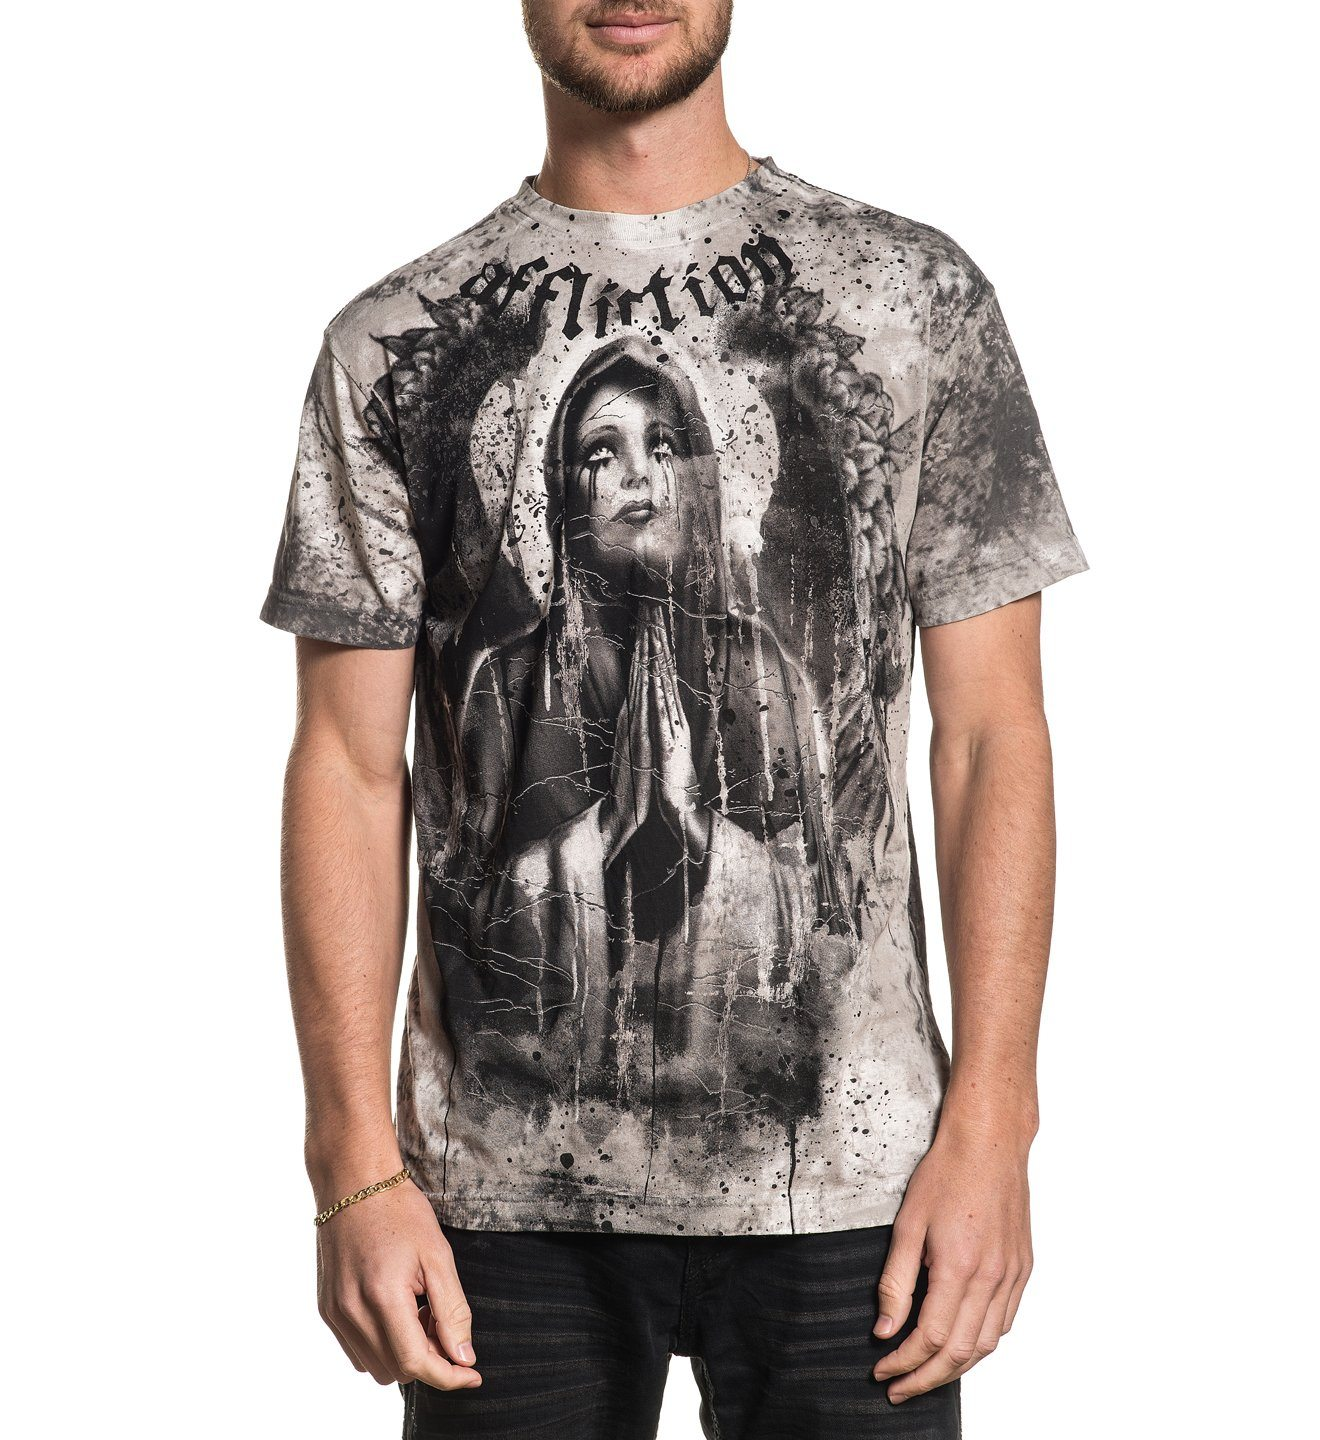 Mourning - Mens Short Sleeve Tees - Affliction Clothing